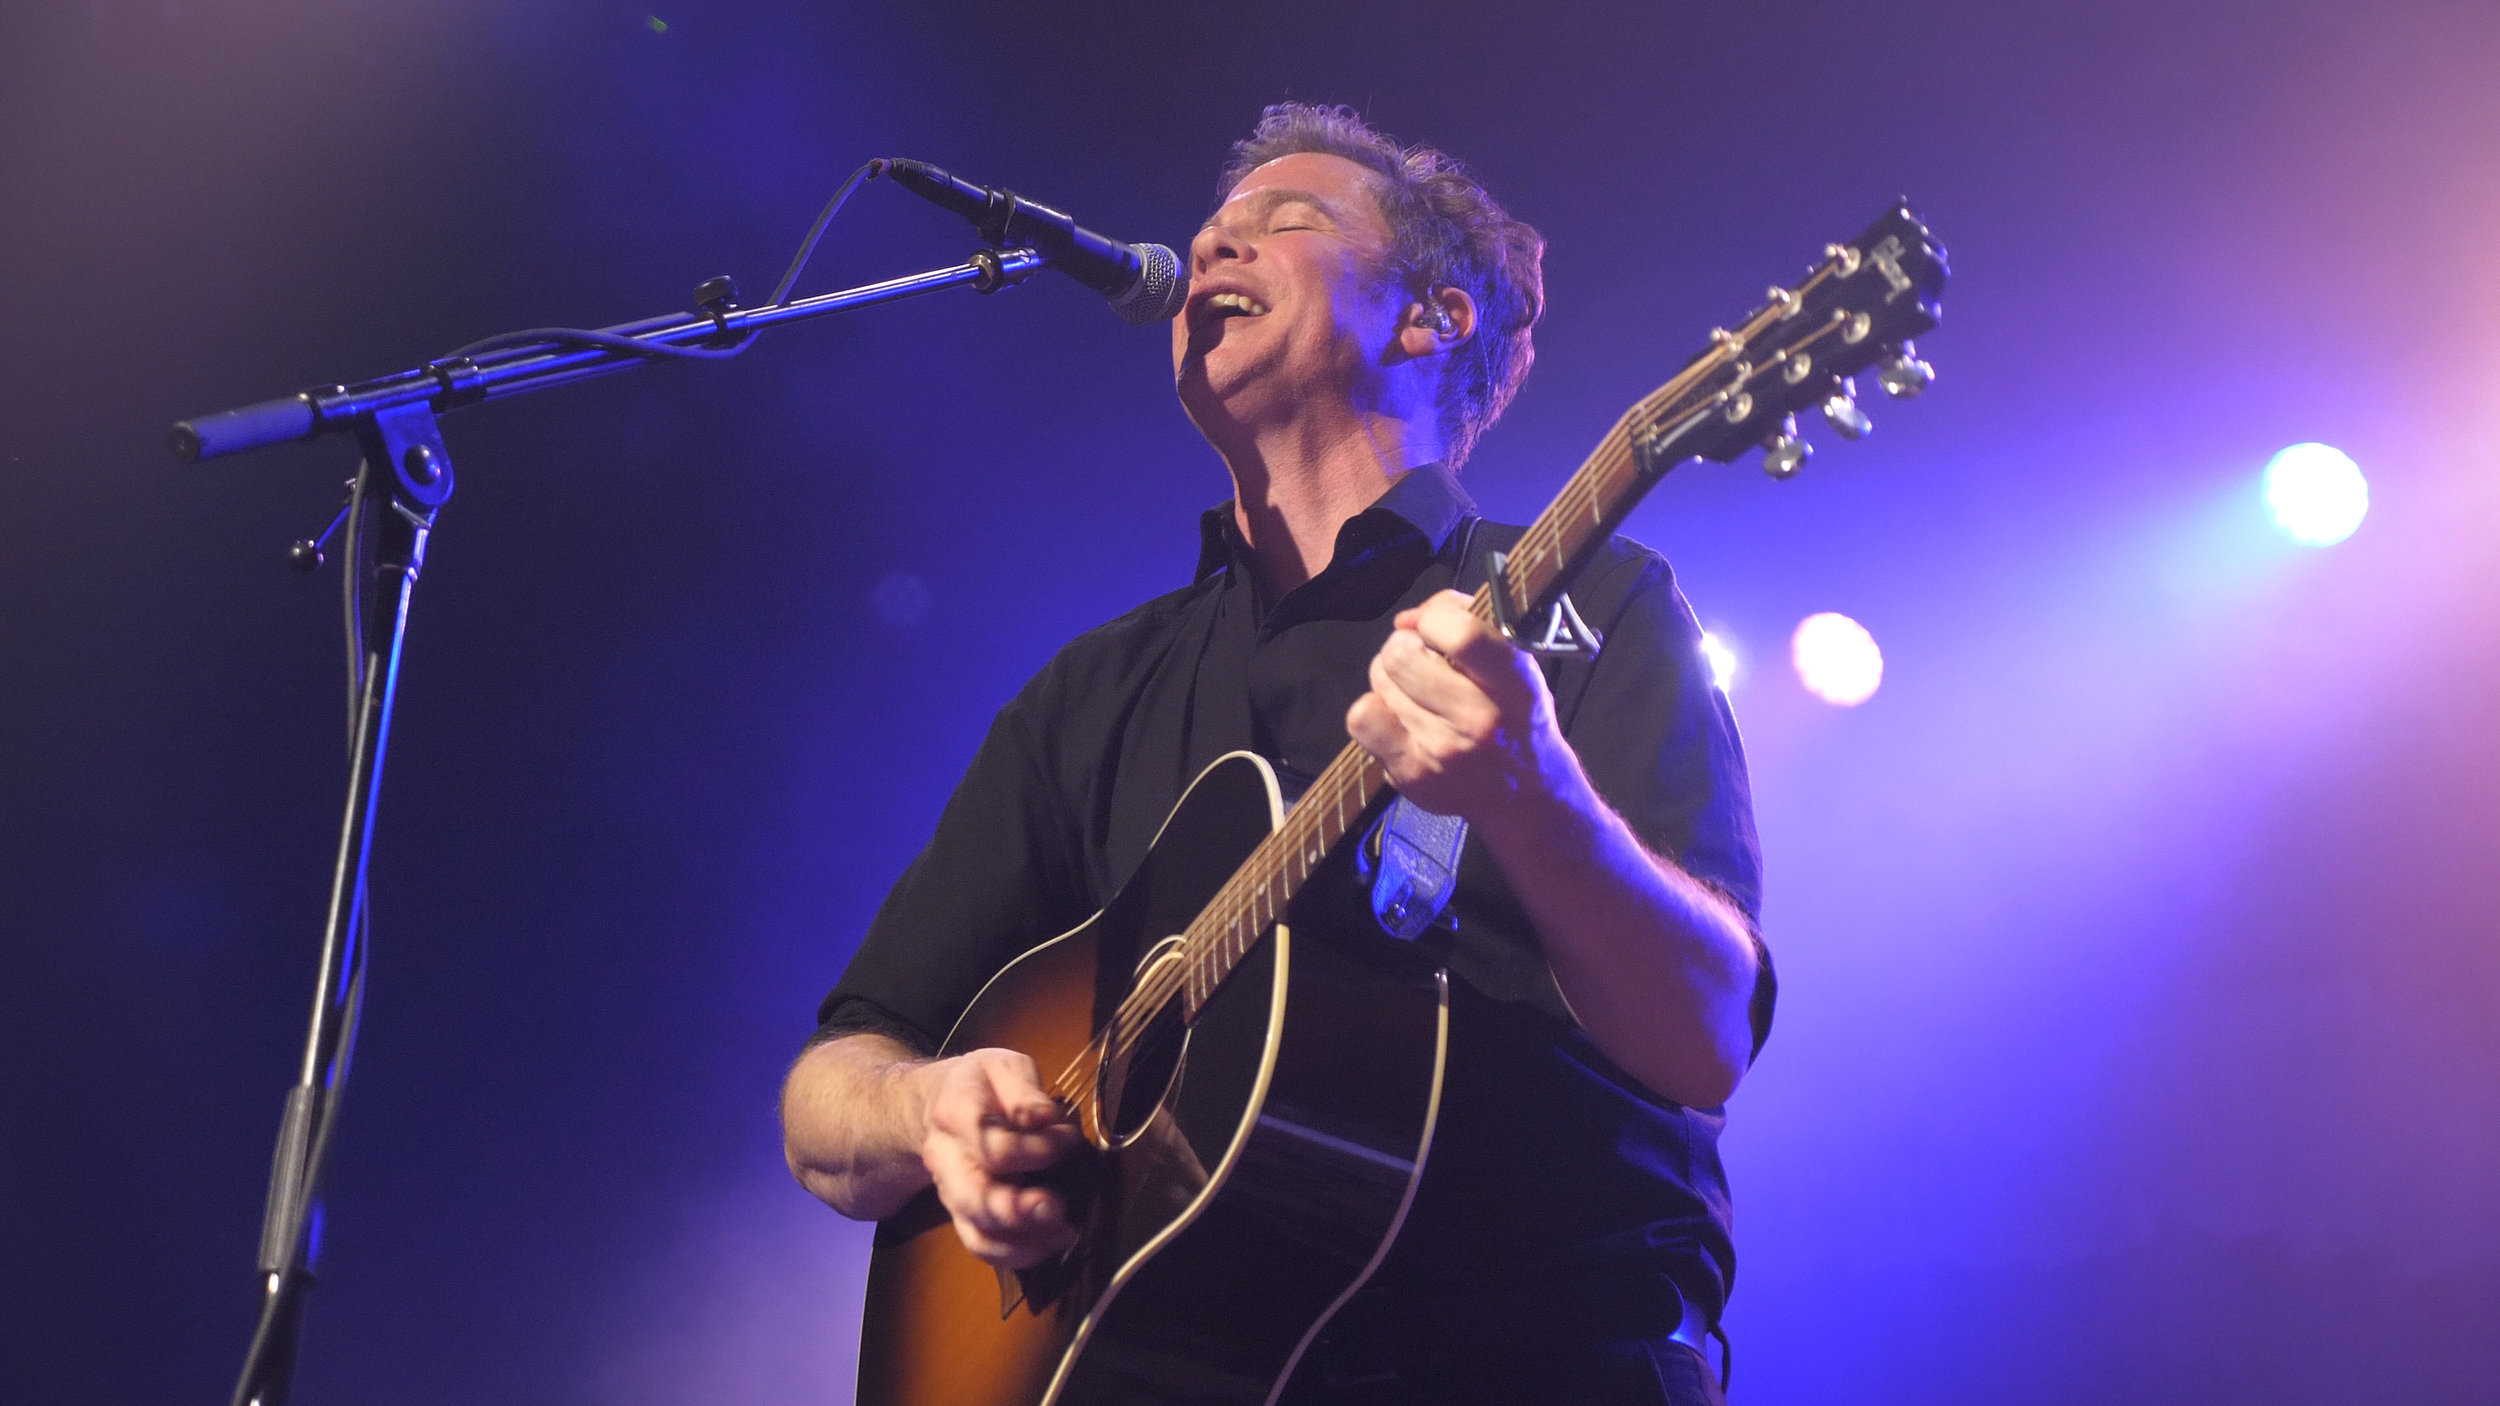 the historical conquests of josh ritter - Much of our shared cultural histories rely on myth making. So, too, does the music of Josh Ritter.Season 3, Episode 6